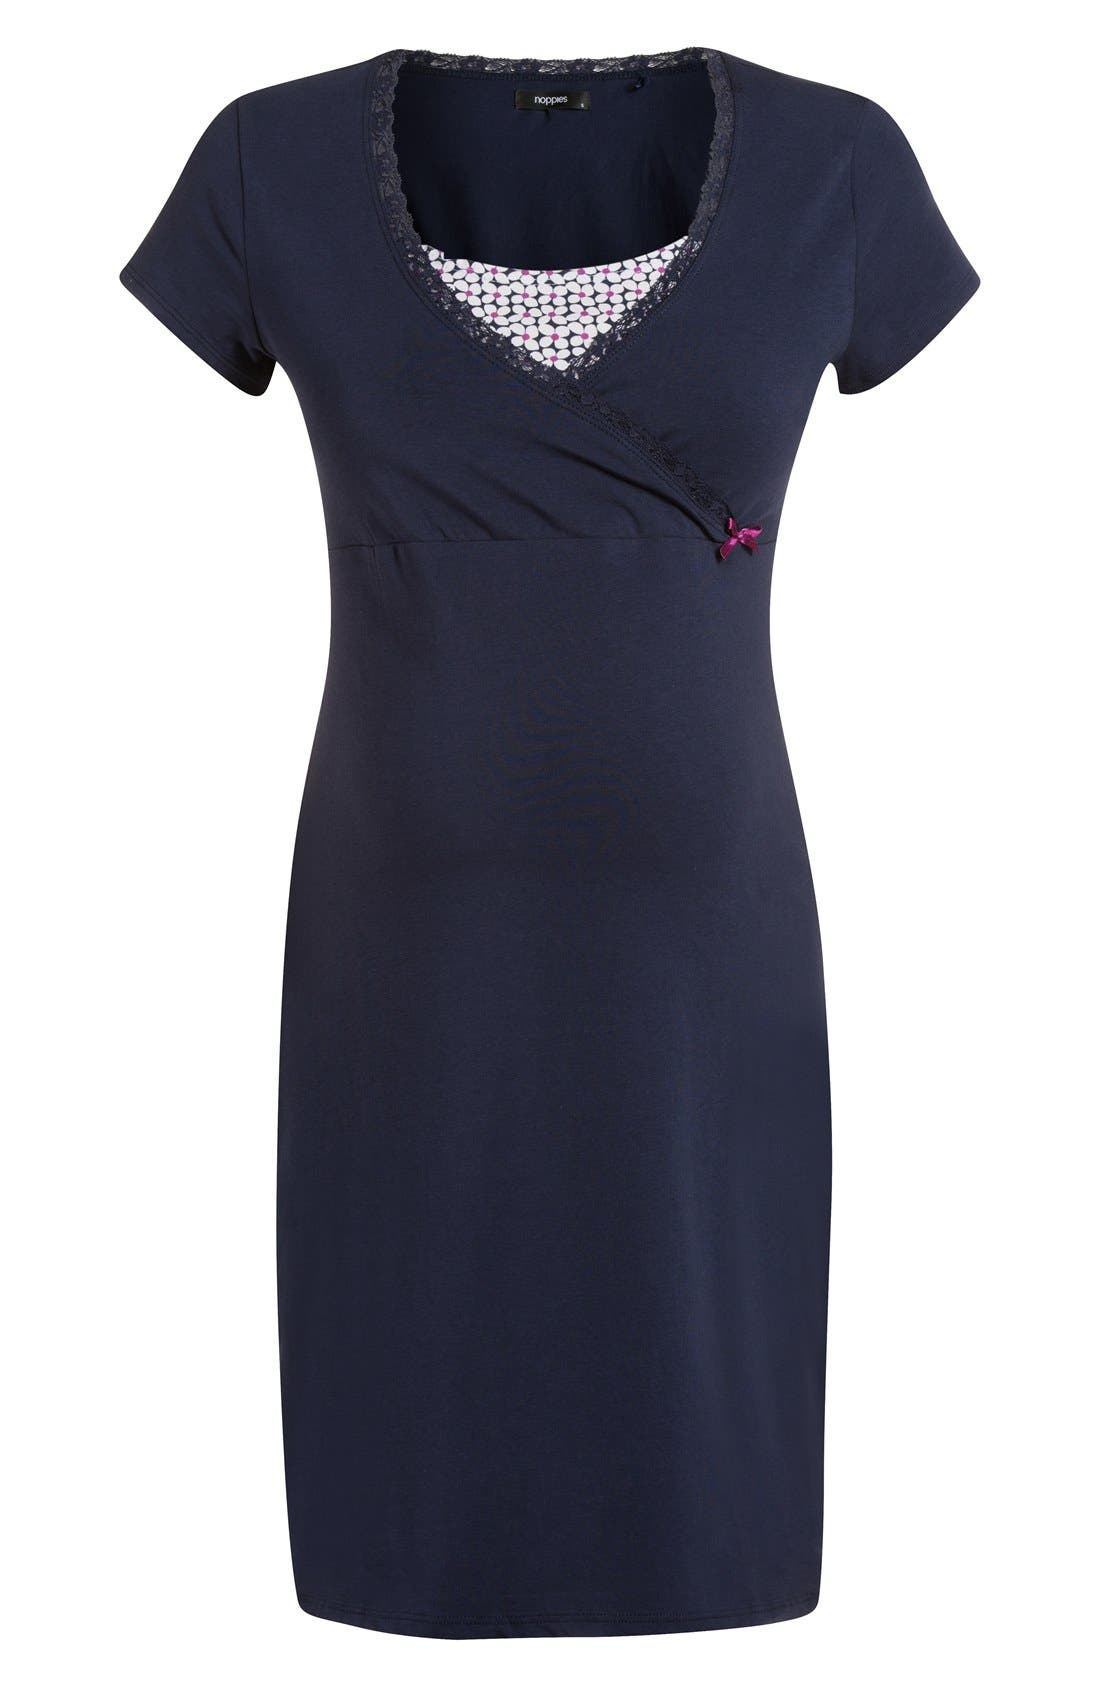 'Marni' Maternity/Nursing Jersey Dress,                             Main thumbnail 1, color,                             NAVY